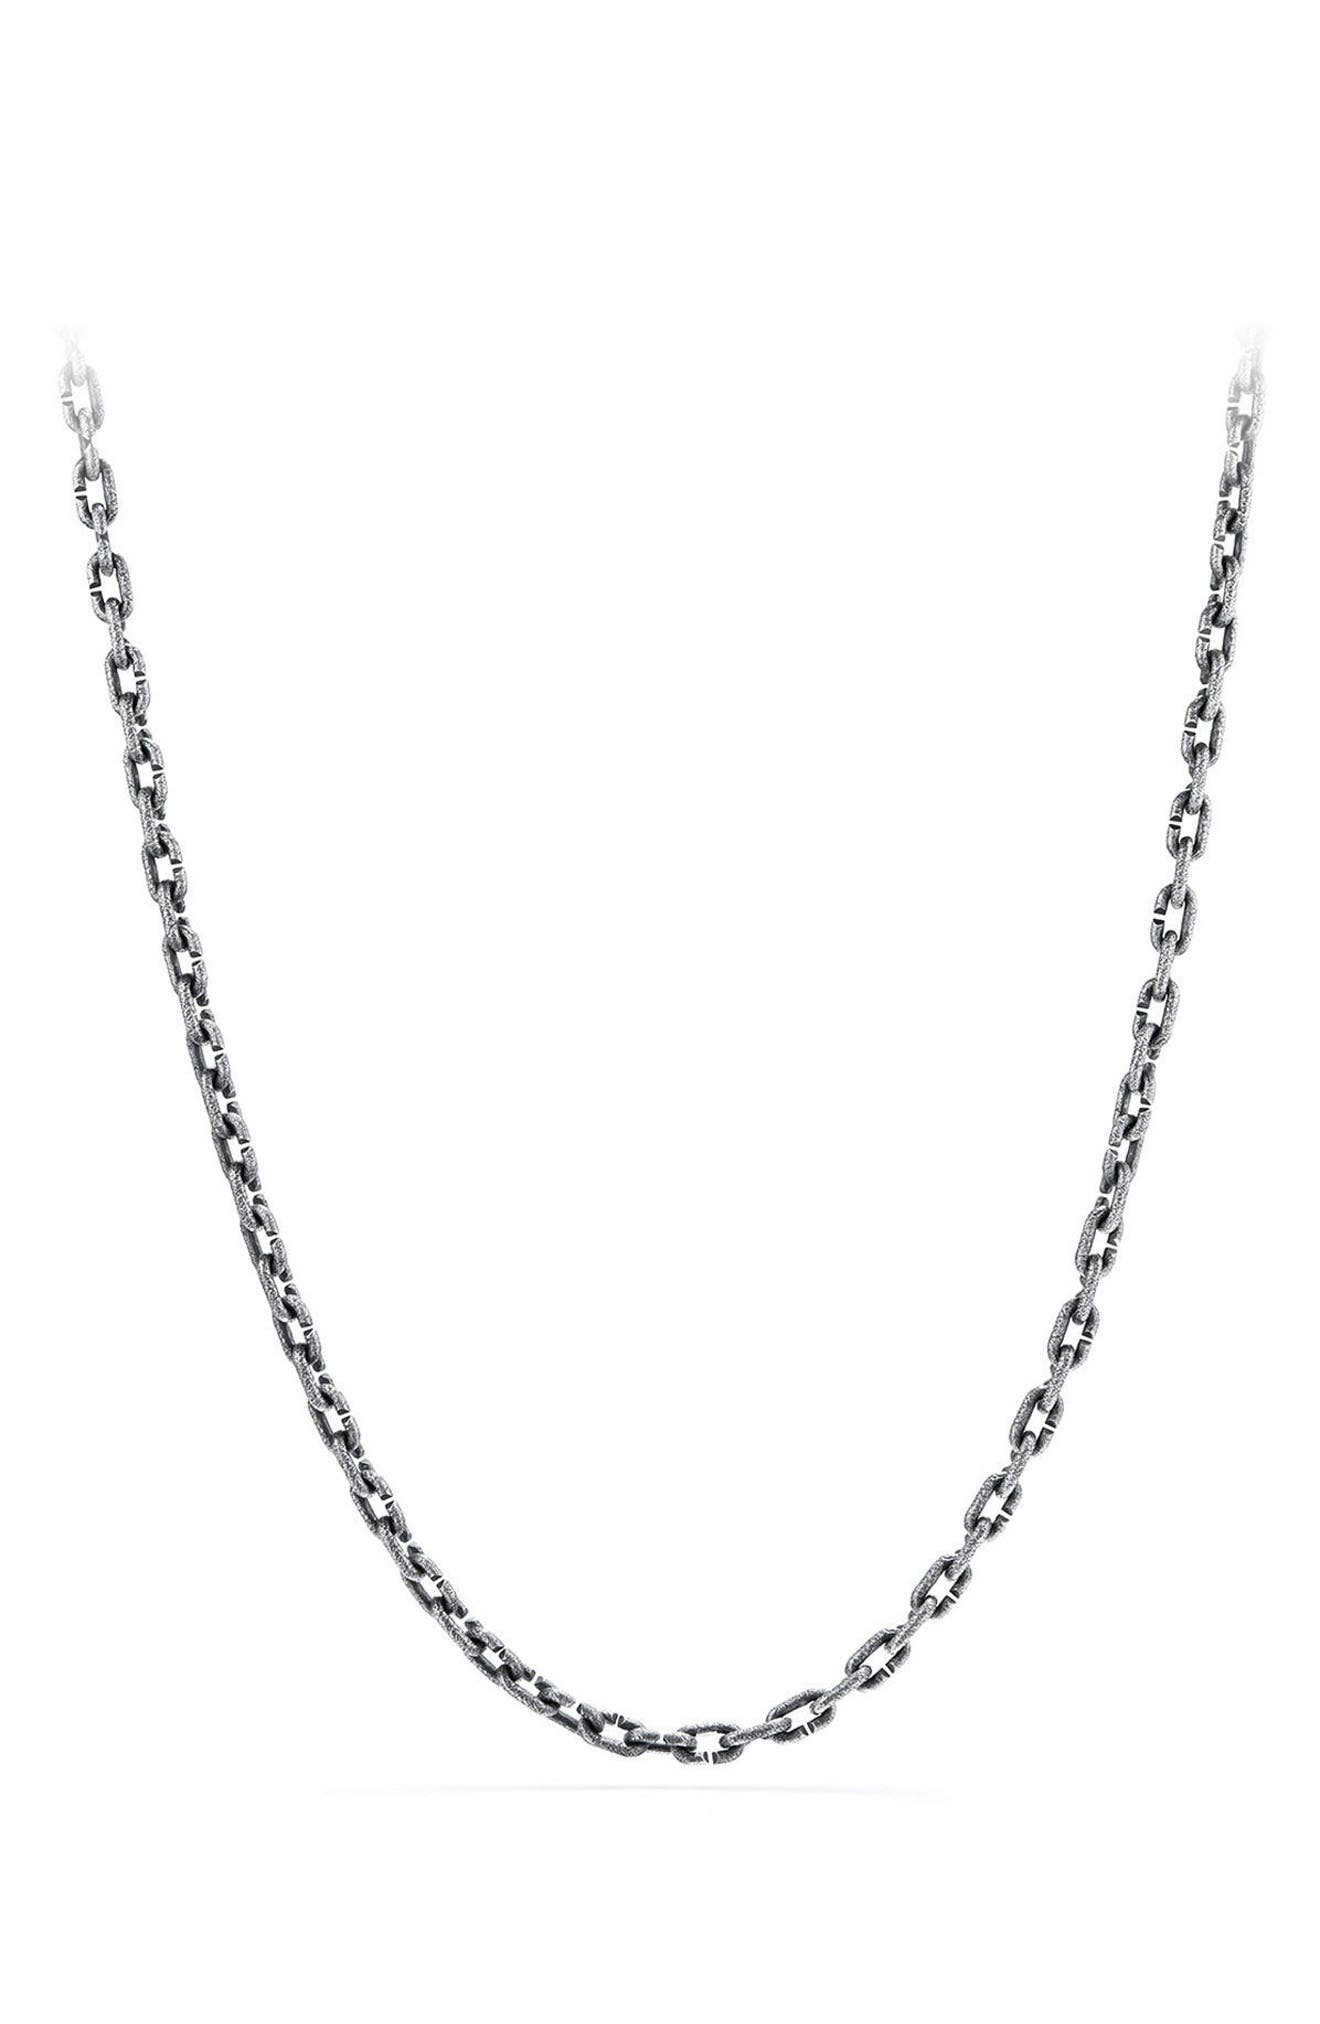 Alternate Image 1 Selected - David Yurman Shipwreck Chain Necklace